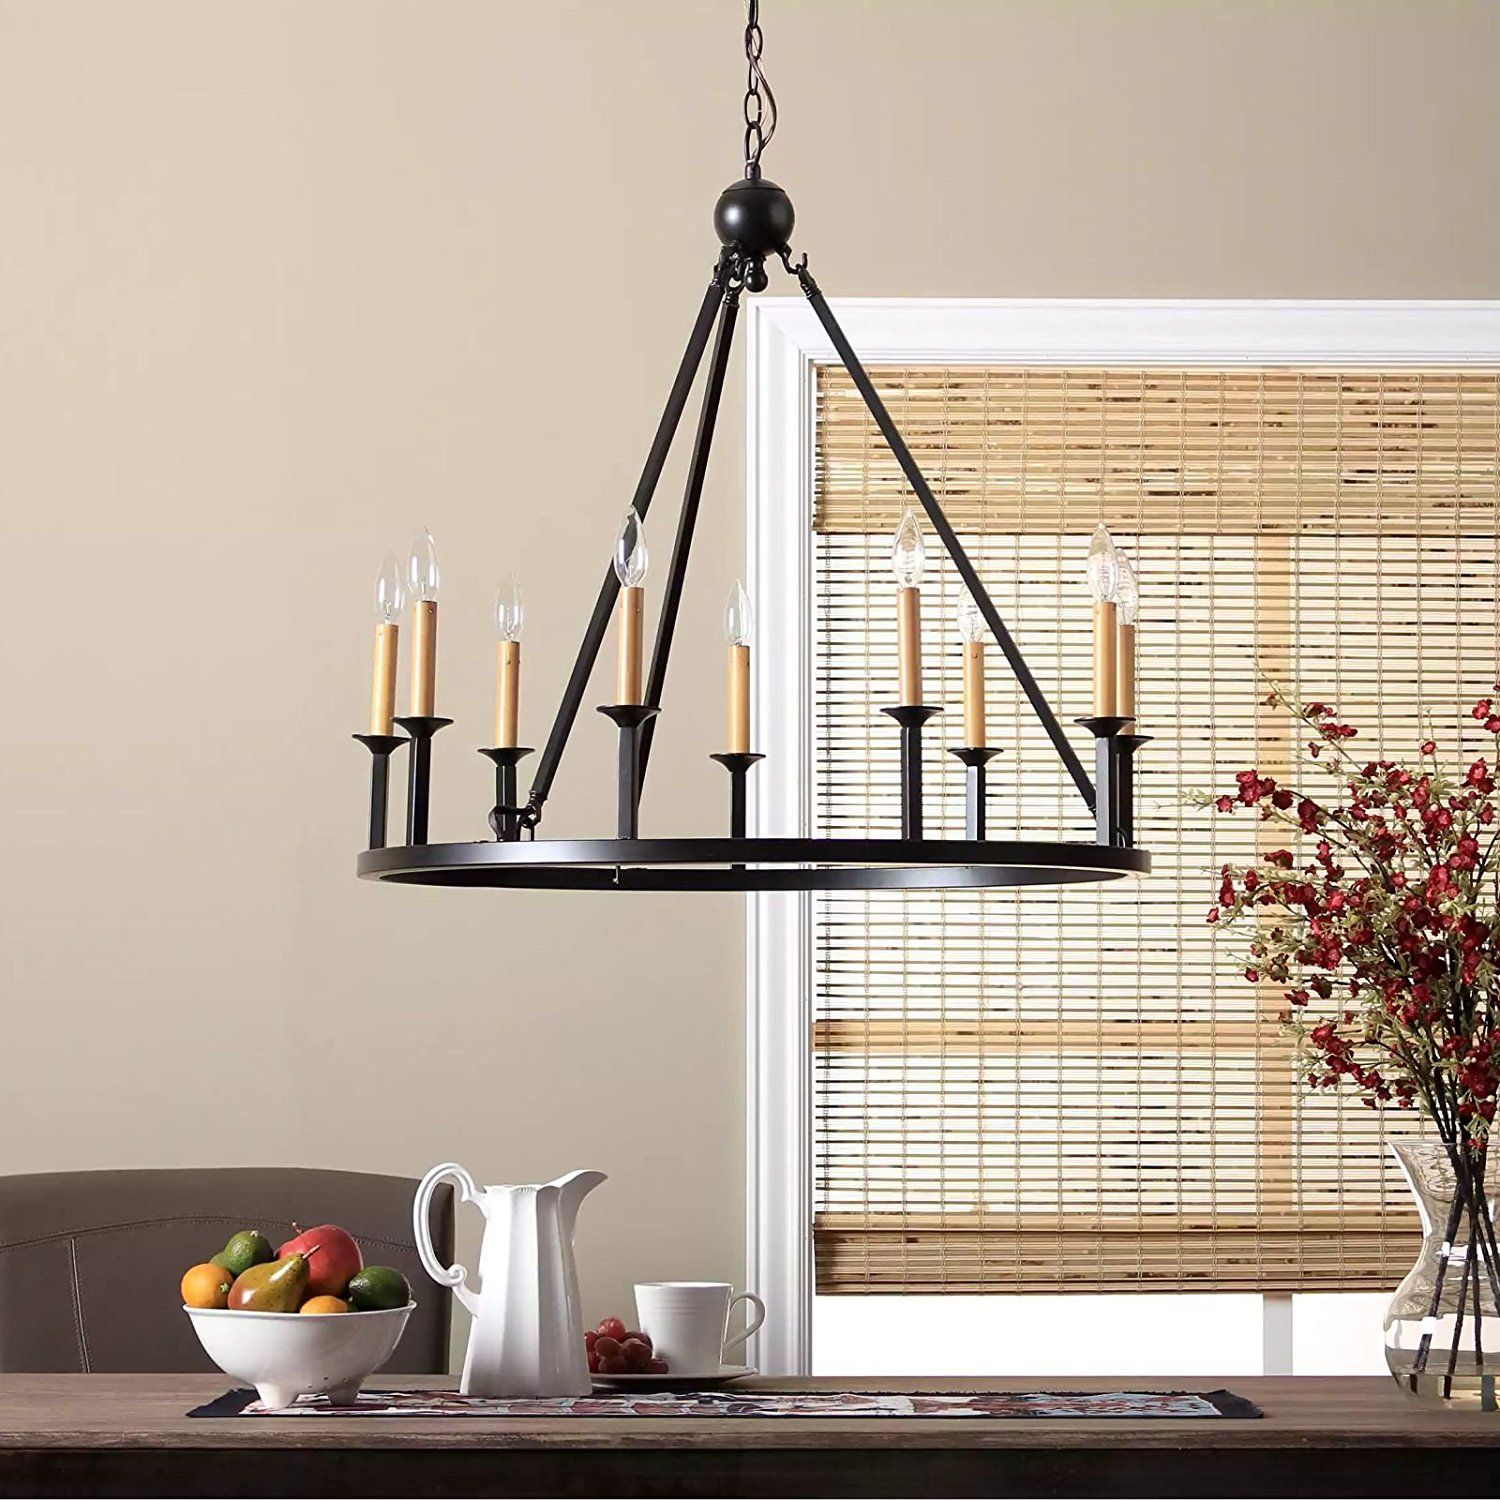 Rustic Chandelier Lighting Great For High And Low Ceiling Rooms Circular Round Fixture Provides Warm Multidirectional Light Candle Style Modern Farmhouse